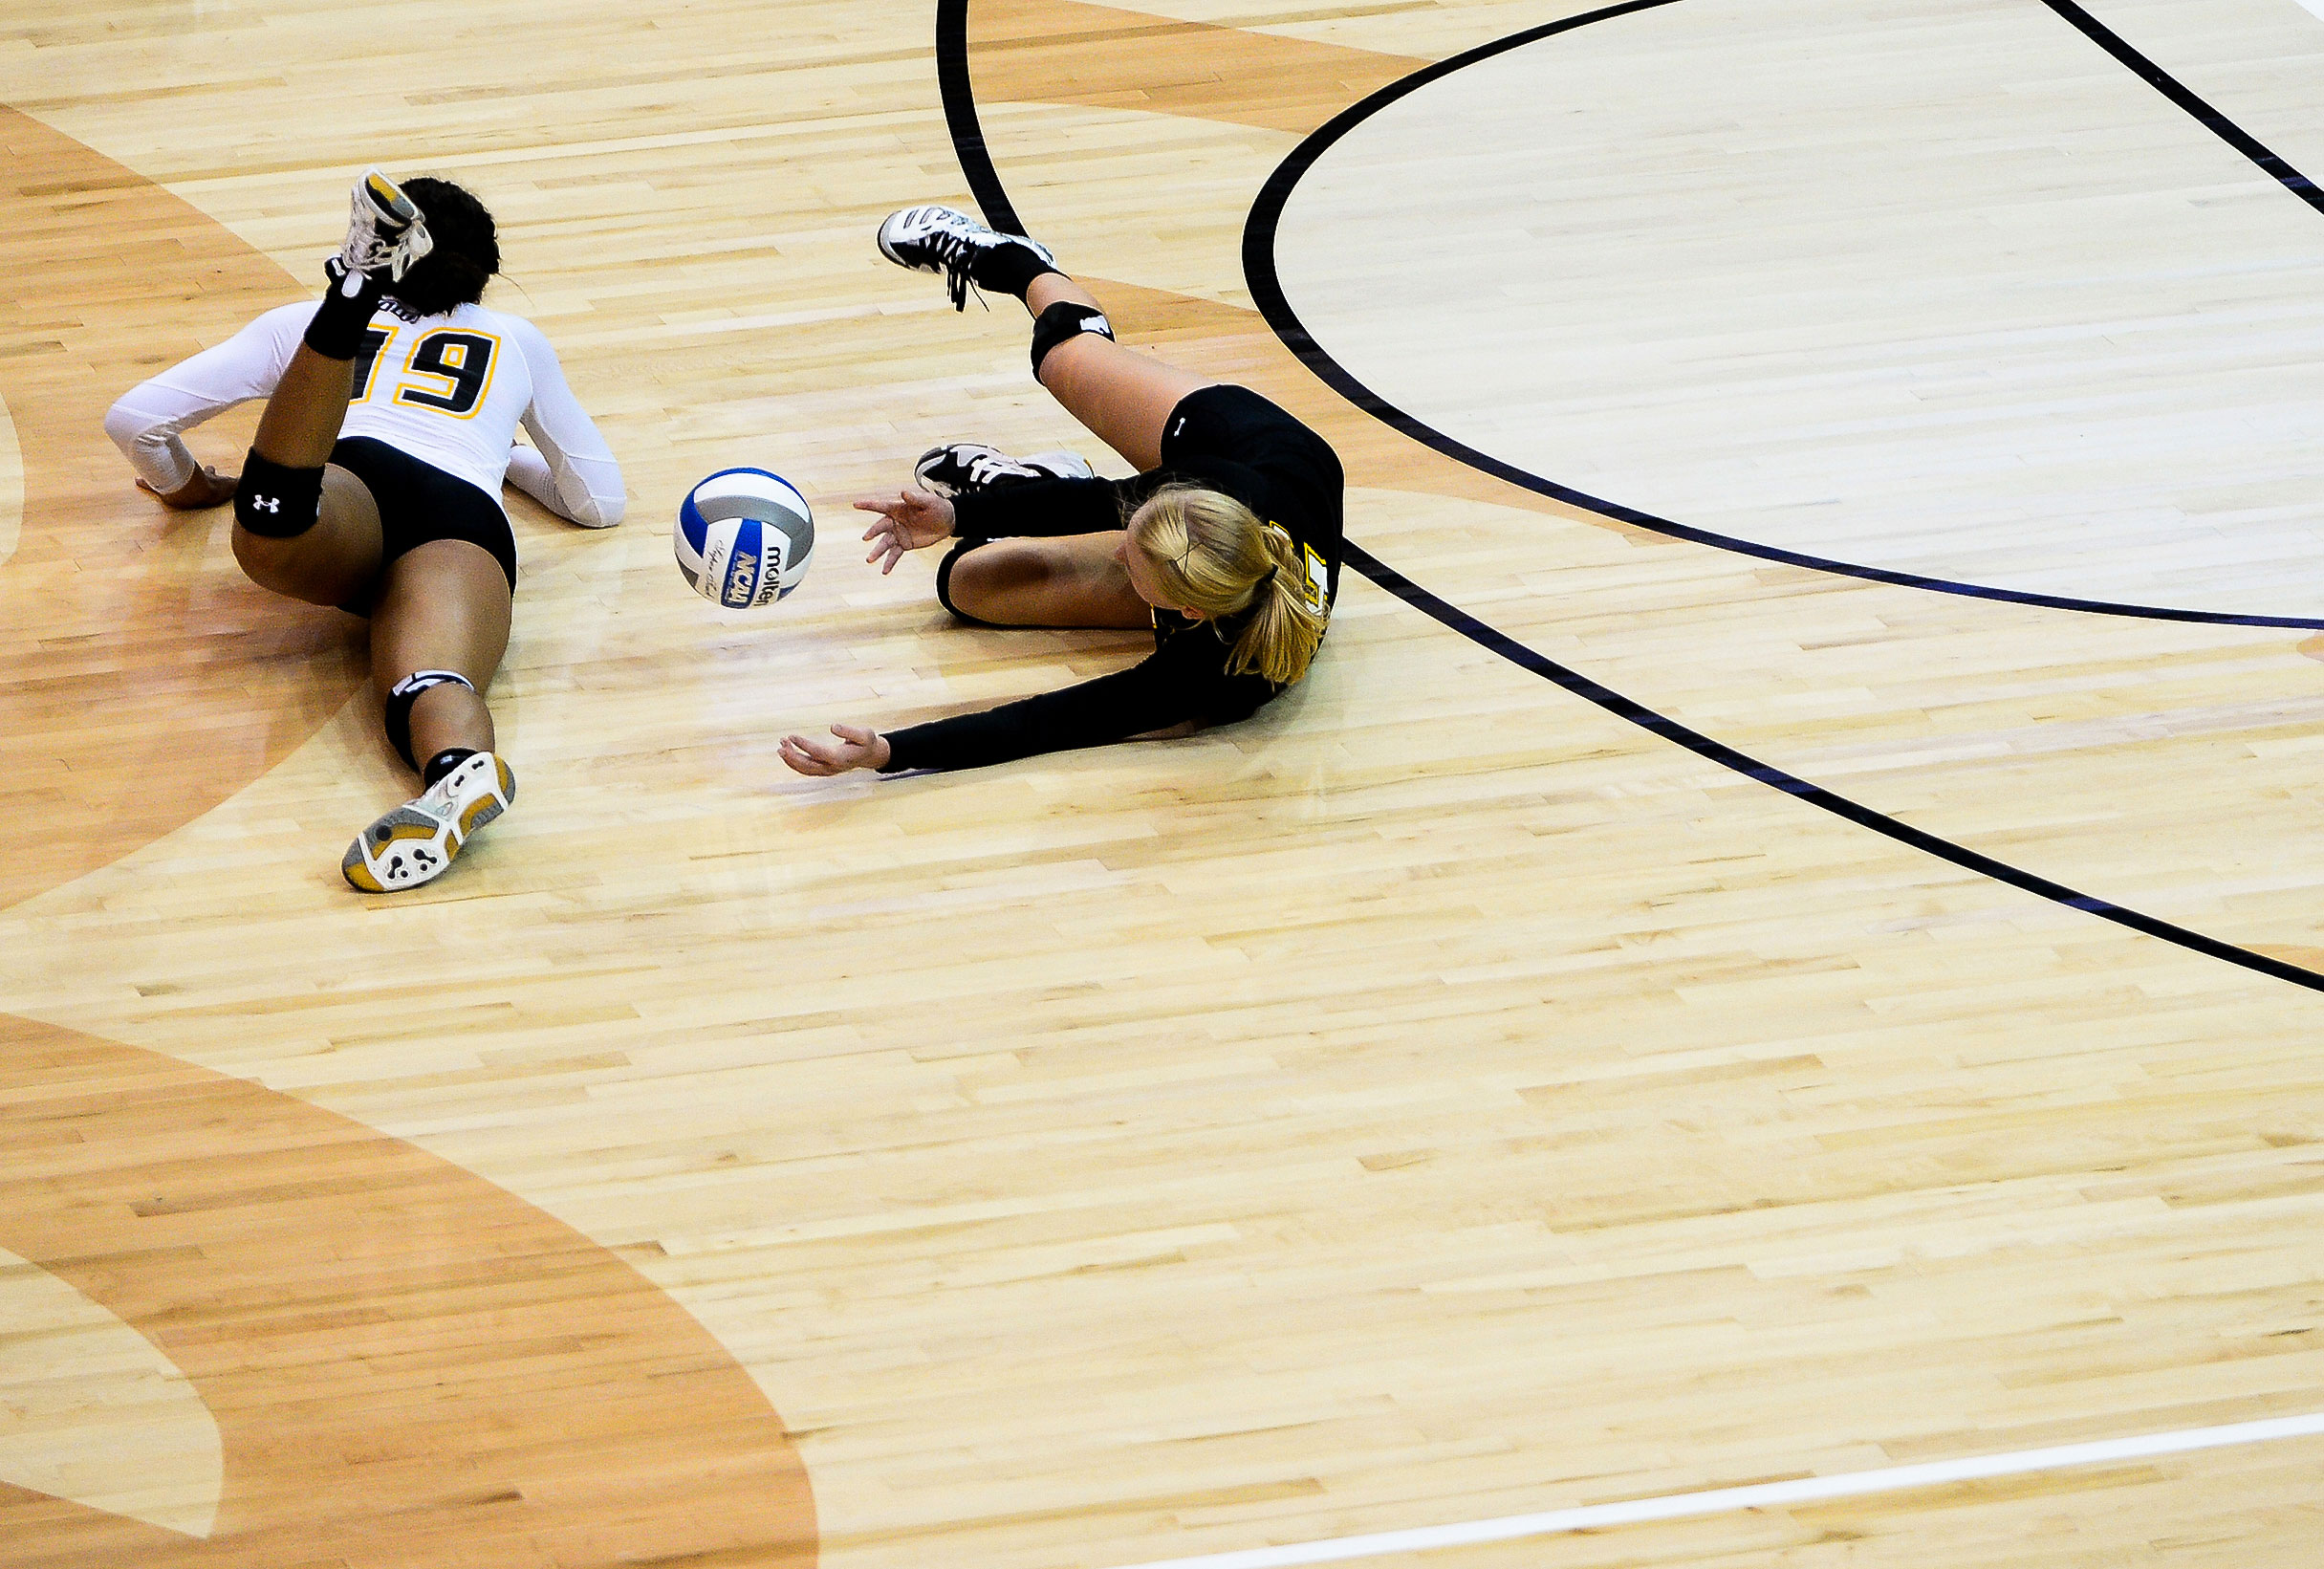 Towson University volleyball players attempt to dive for a ball during  their home opener against Coppin State University in Baltimore, MD on Sept. 3, 2013.